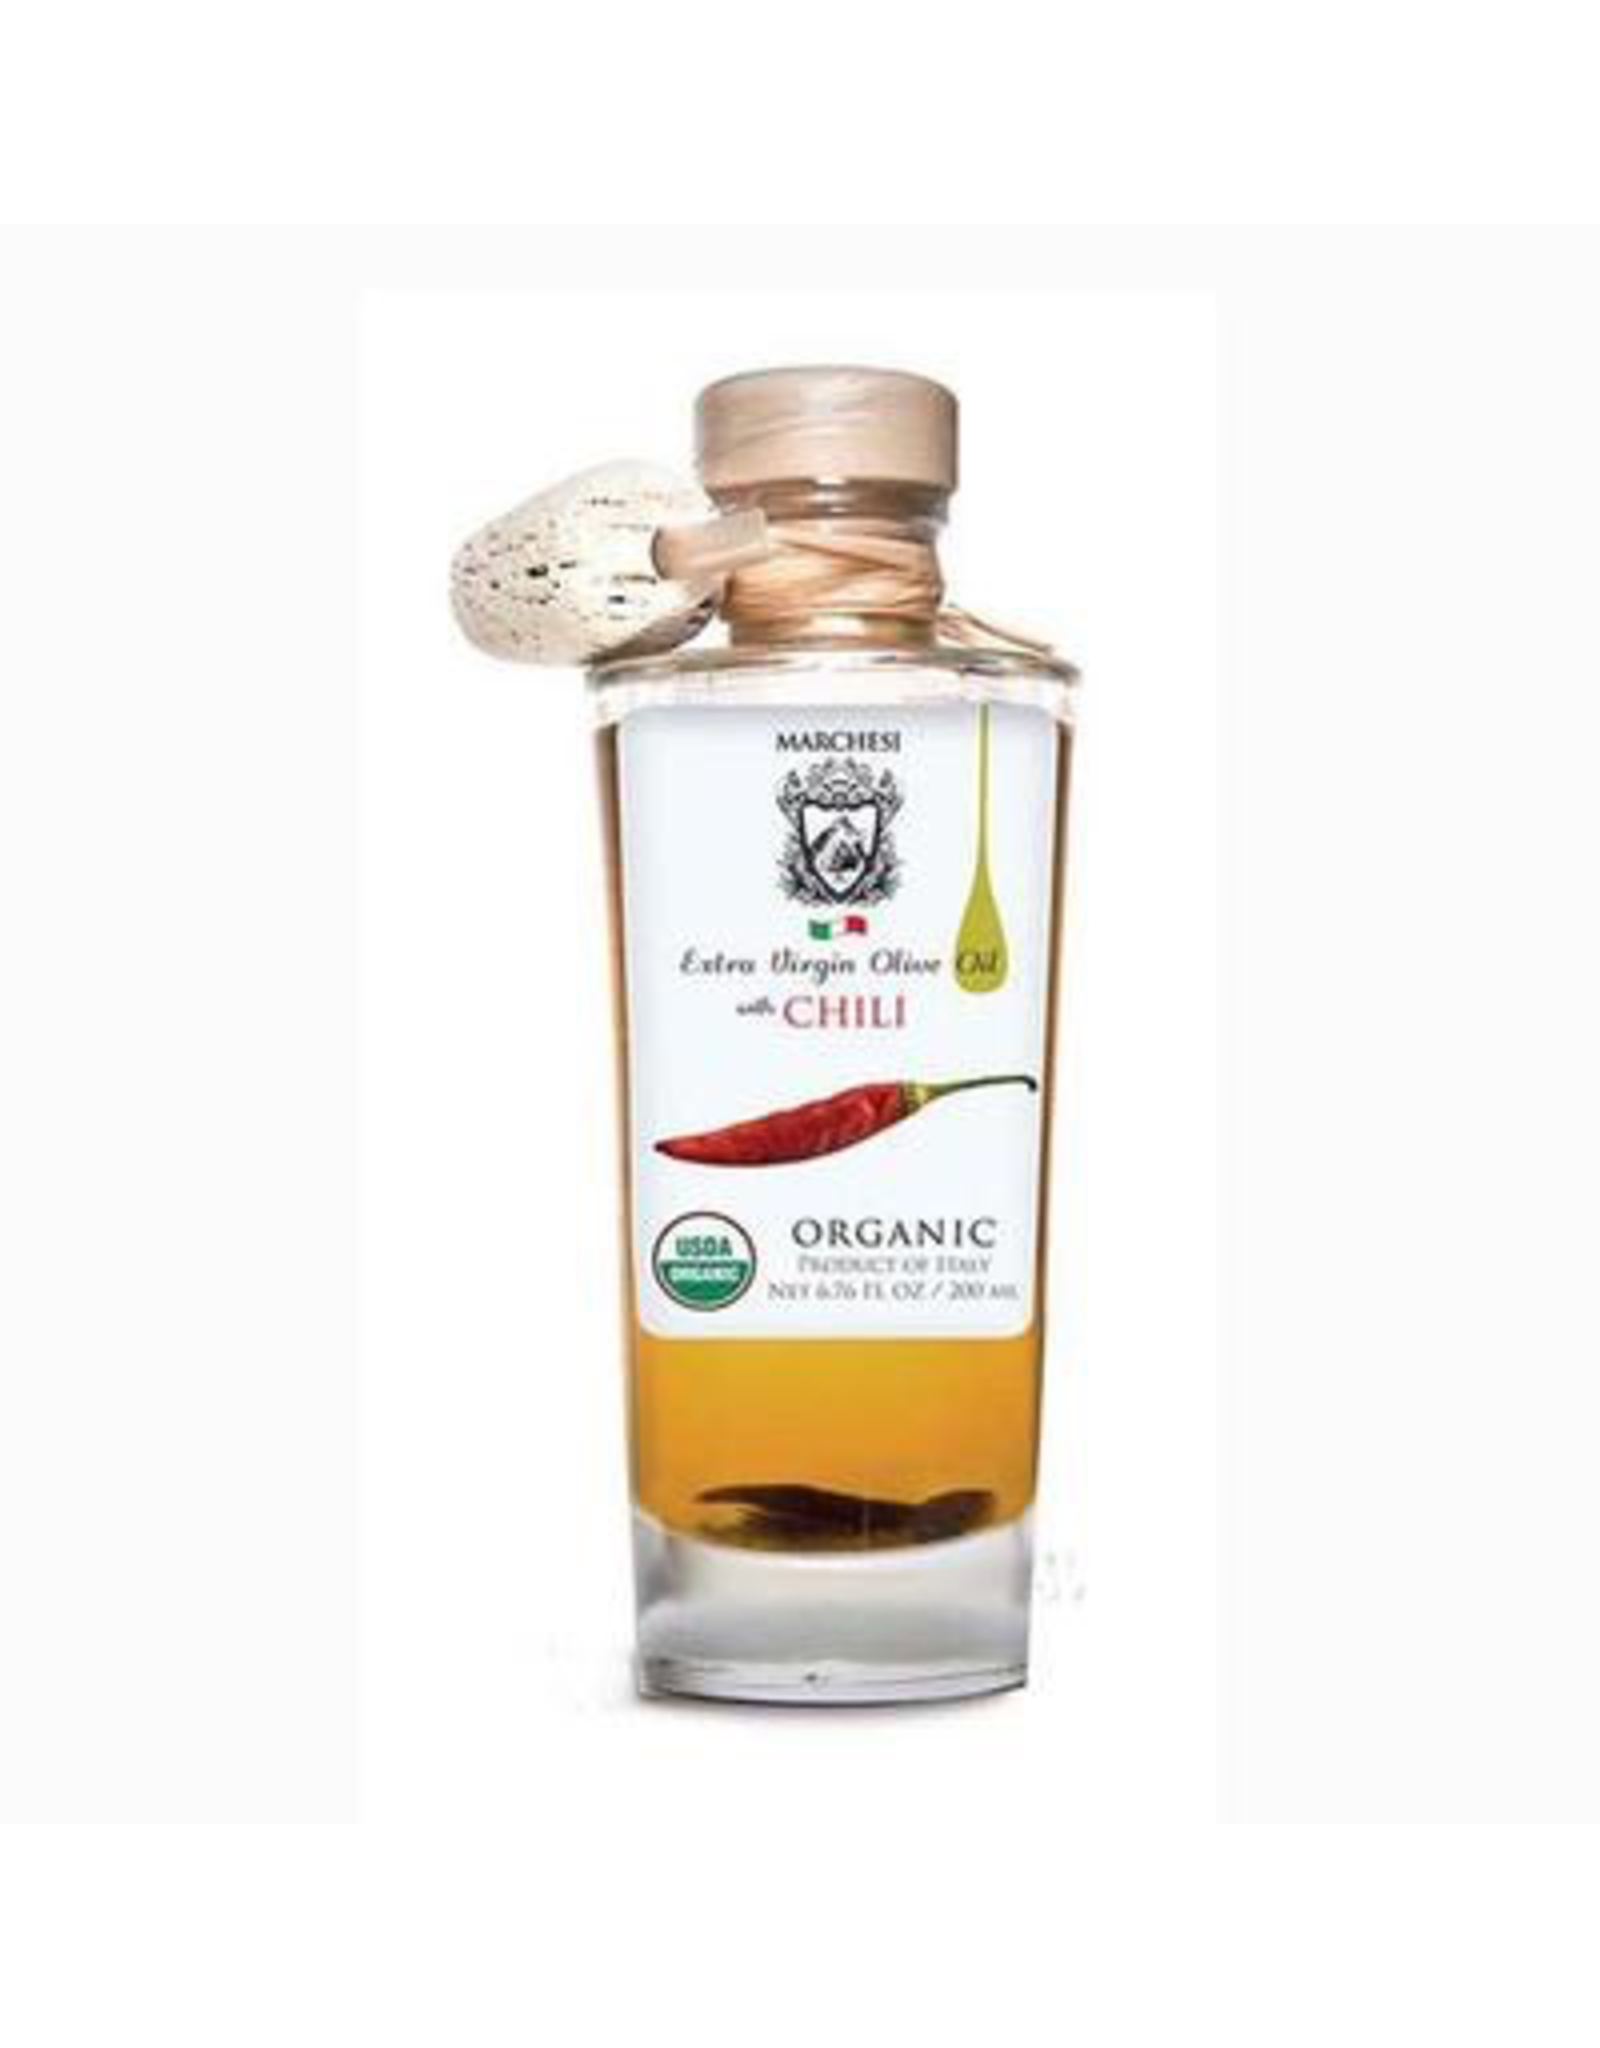 Specialty Foods Marchesi Extra Virgin Olive Oil, Organic, infused with Chili, 200ml